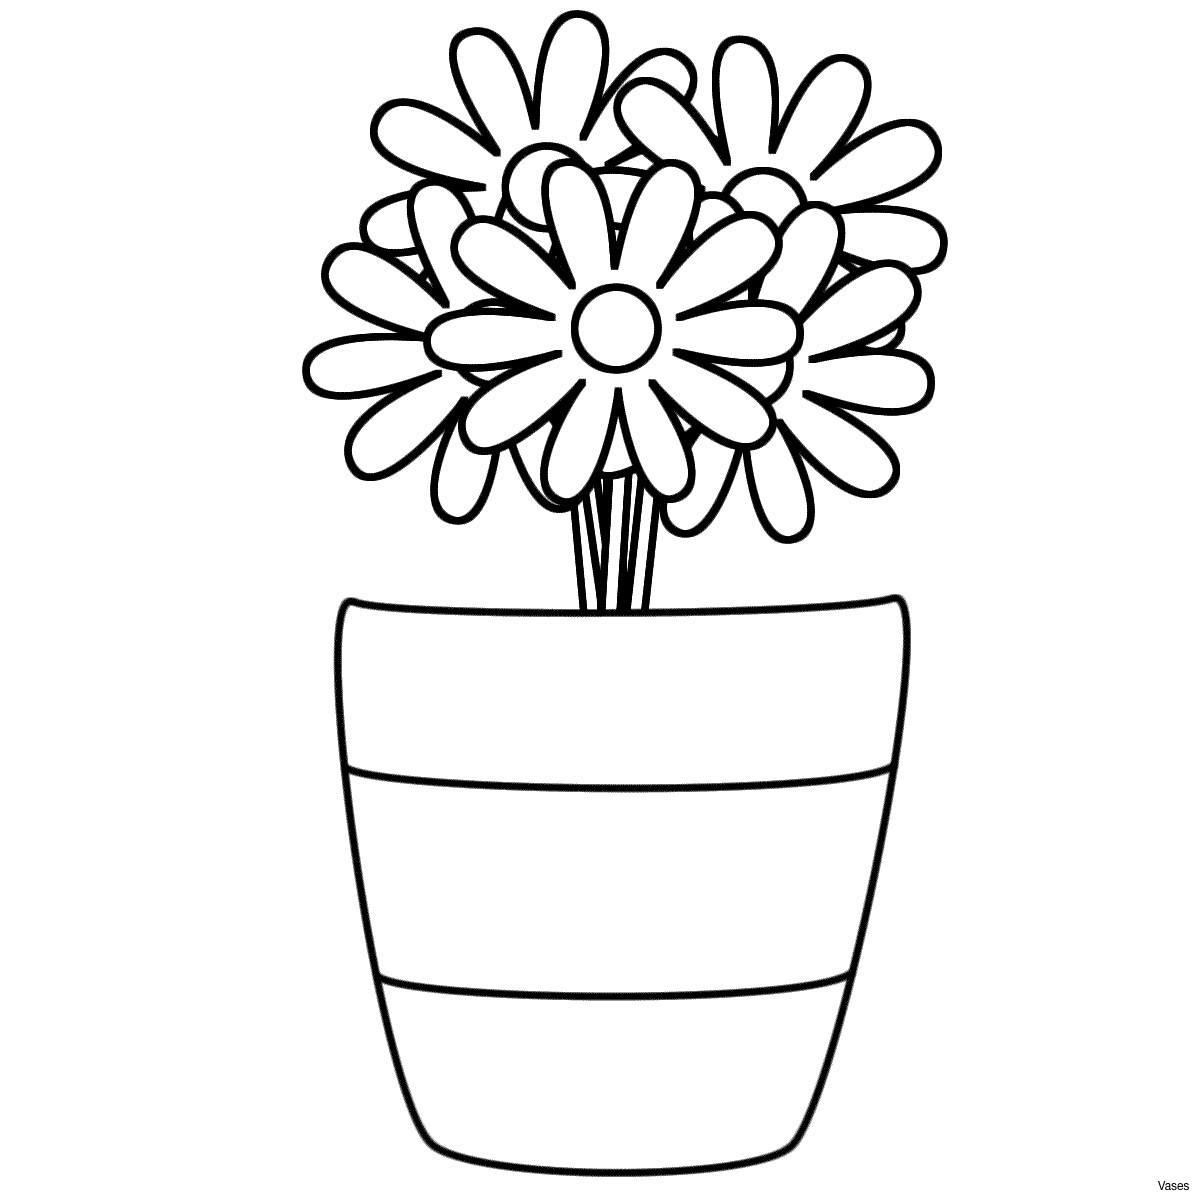 picture of a flower vase to color of coloring page of a book elegant best of vases flower vase coloring in coloring page of a book elegant best of vases flower vase coloring page pages flowers in